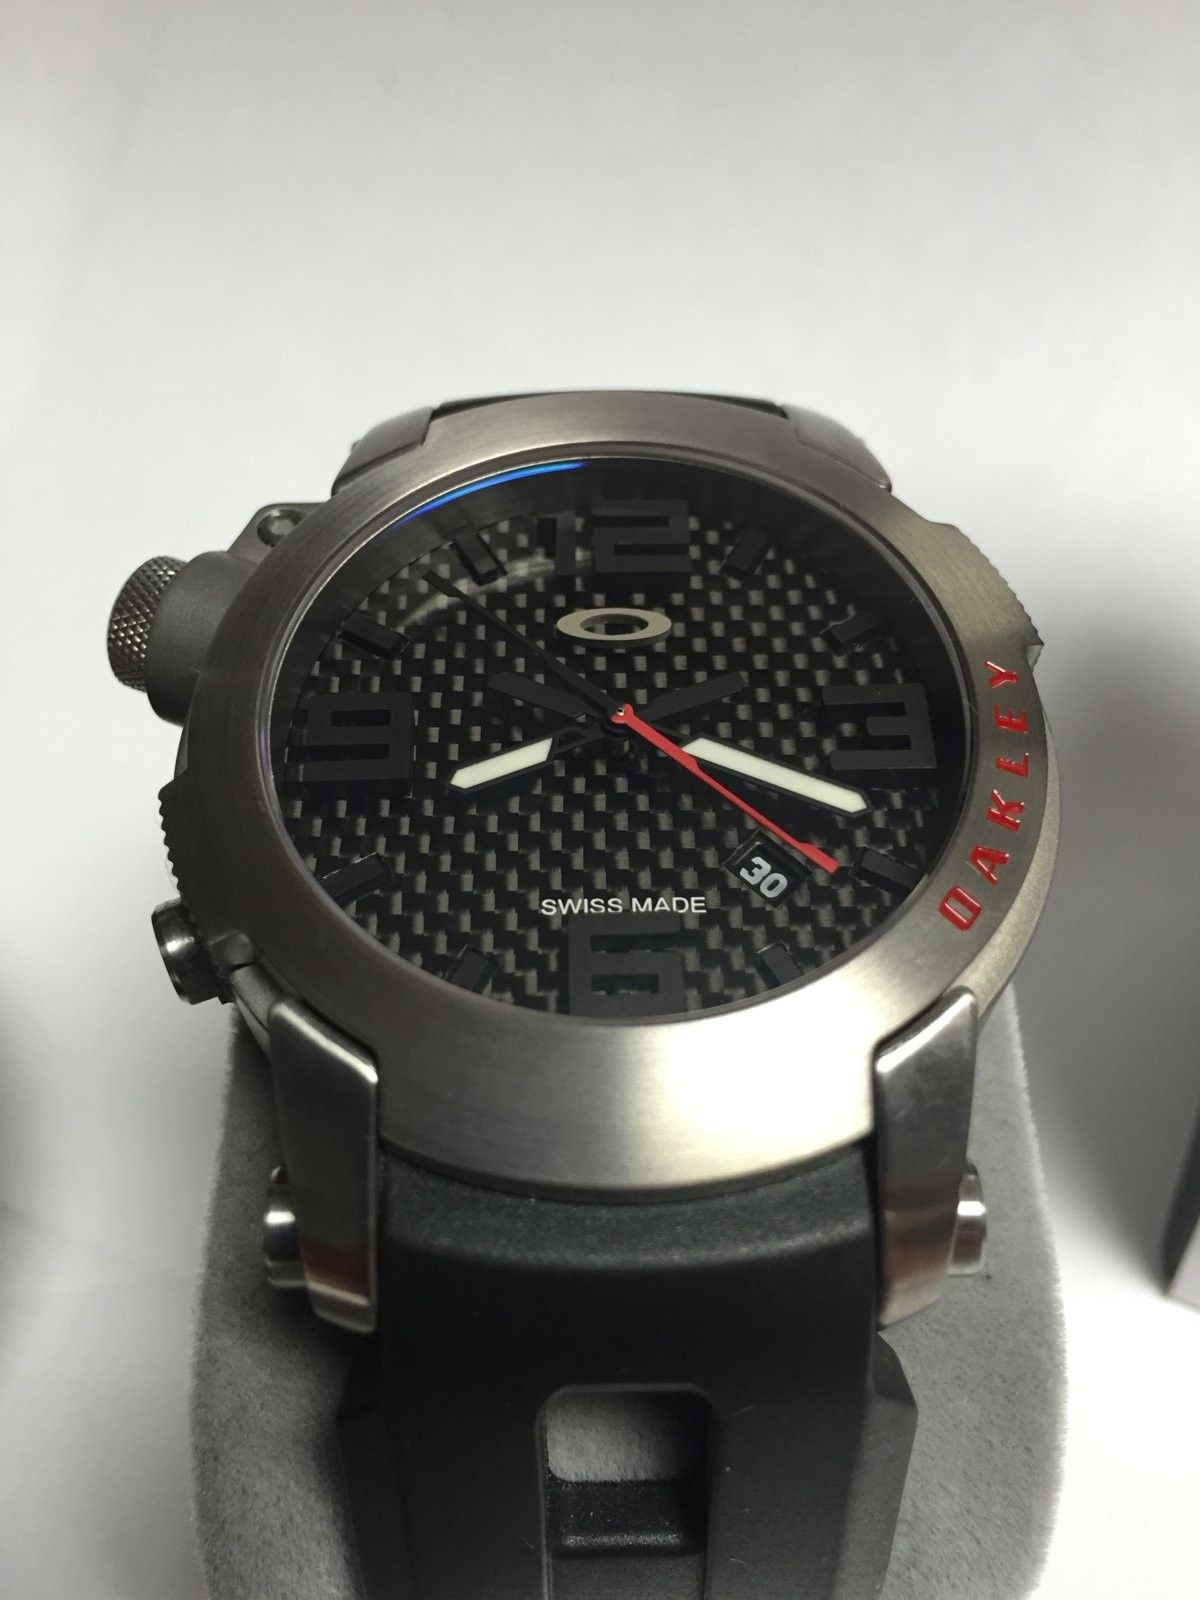 Kill switch titanium with or w/o case $510 obo no trades - IMG_1139.JPG